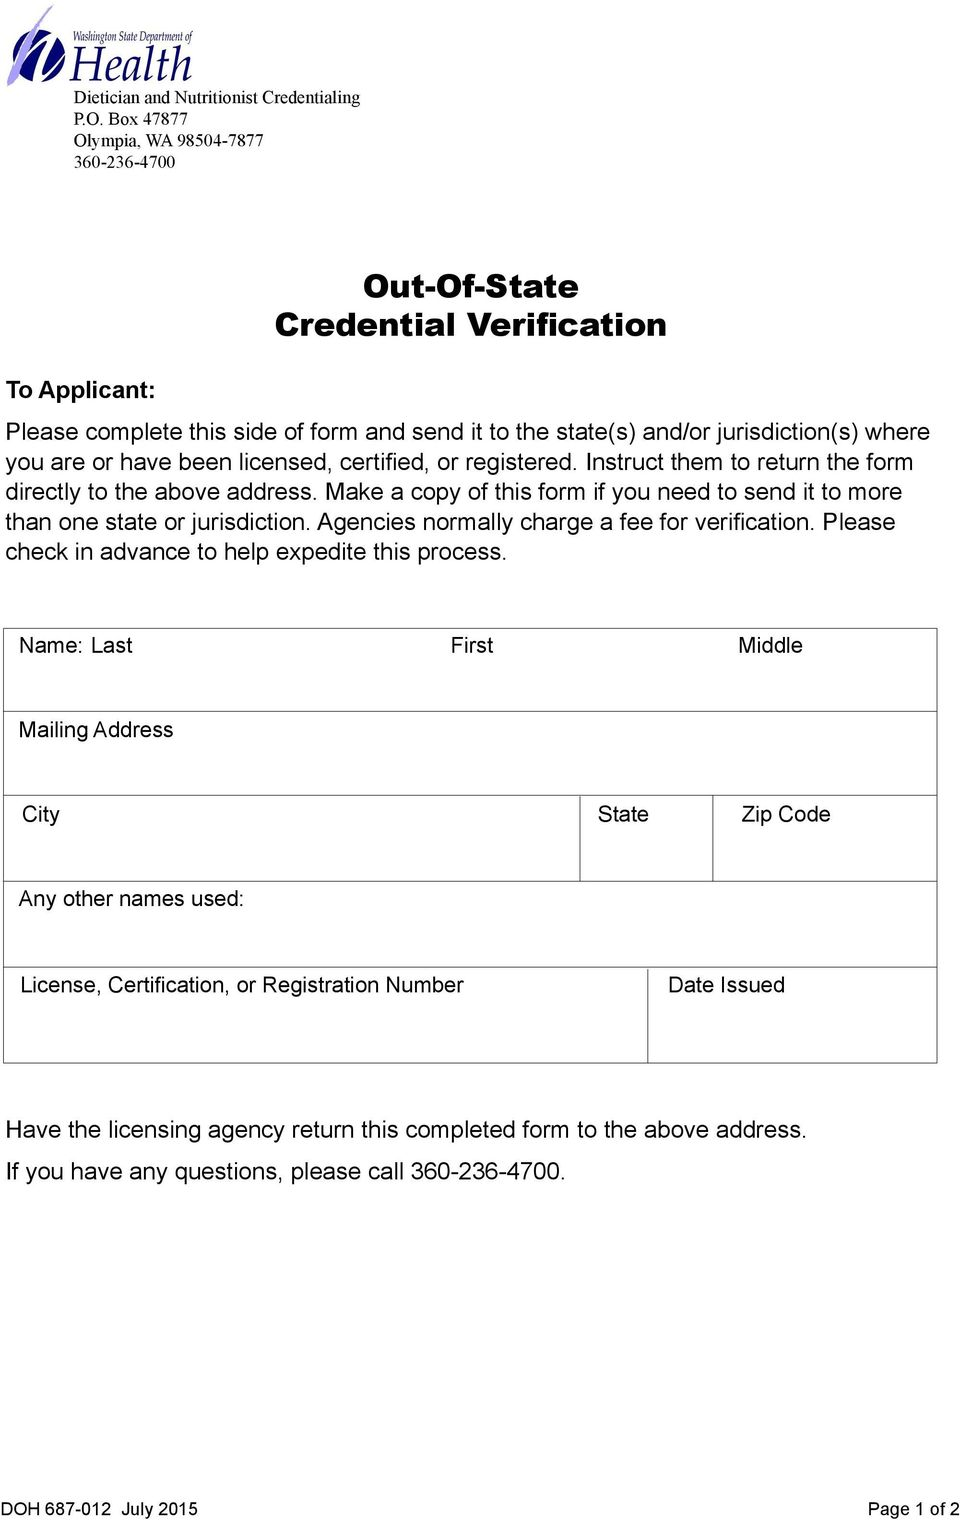 have been licensed, certified, or registered. Instruct them to return the form directly to the above address. Make a copy of this form if you need to send it to more than one state or jurisdiction.